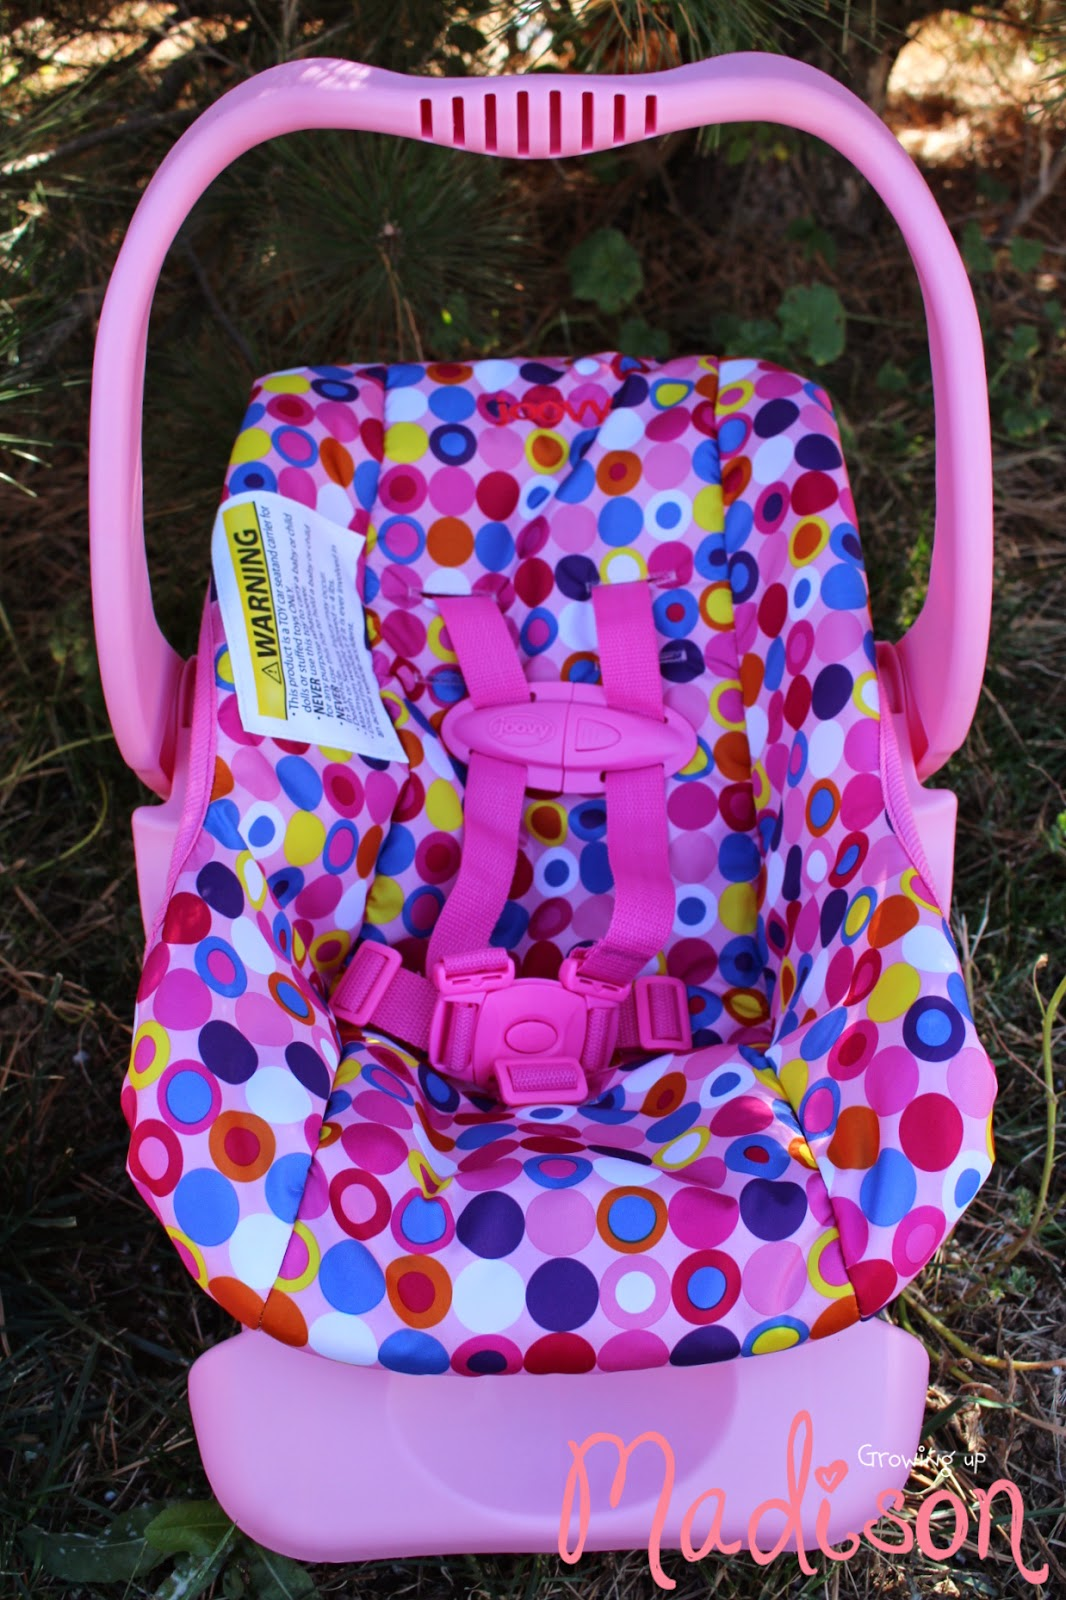 Joovy Toy Car Seat - It\'s the Real Deal - AnnMarie John